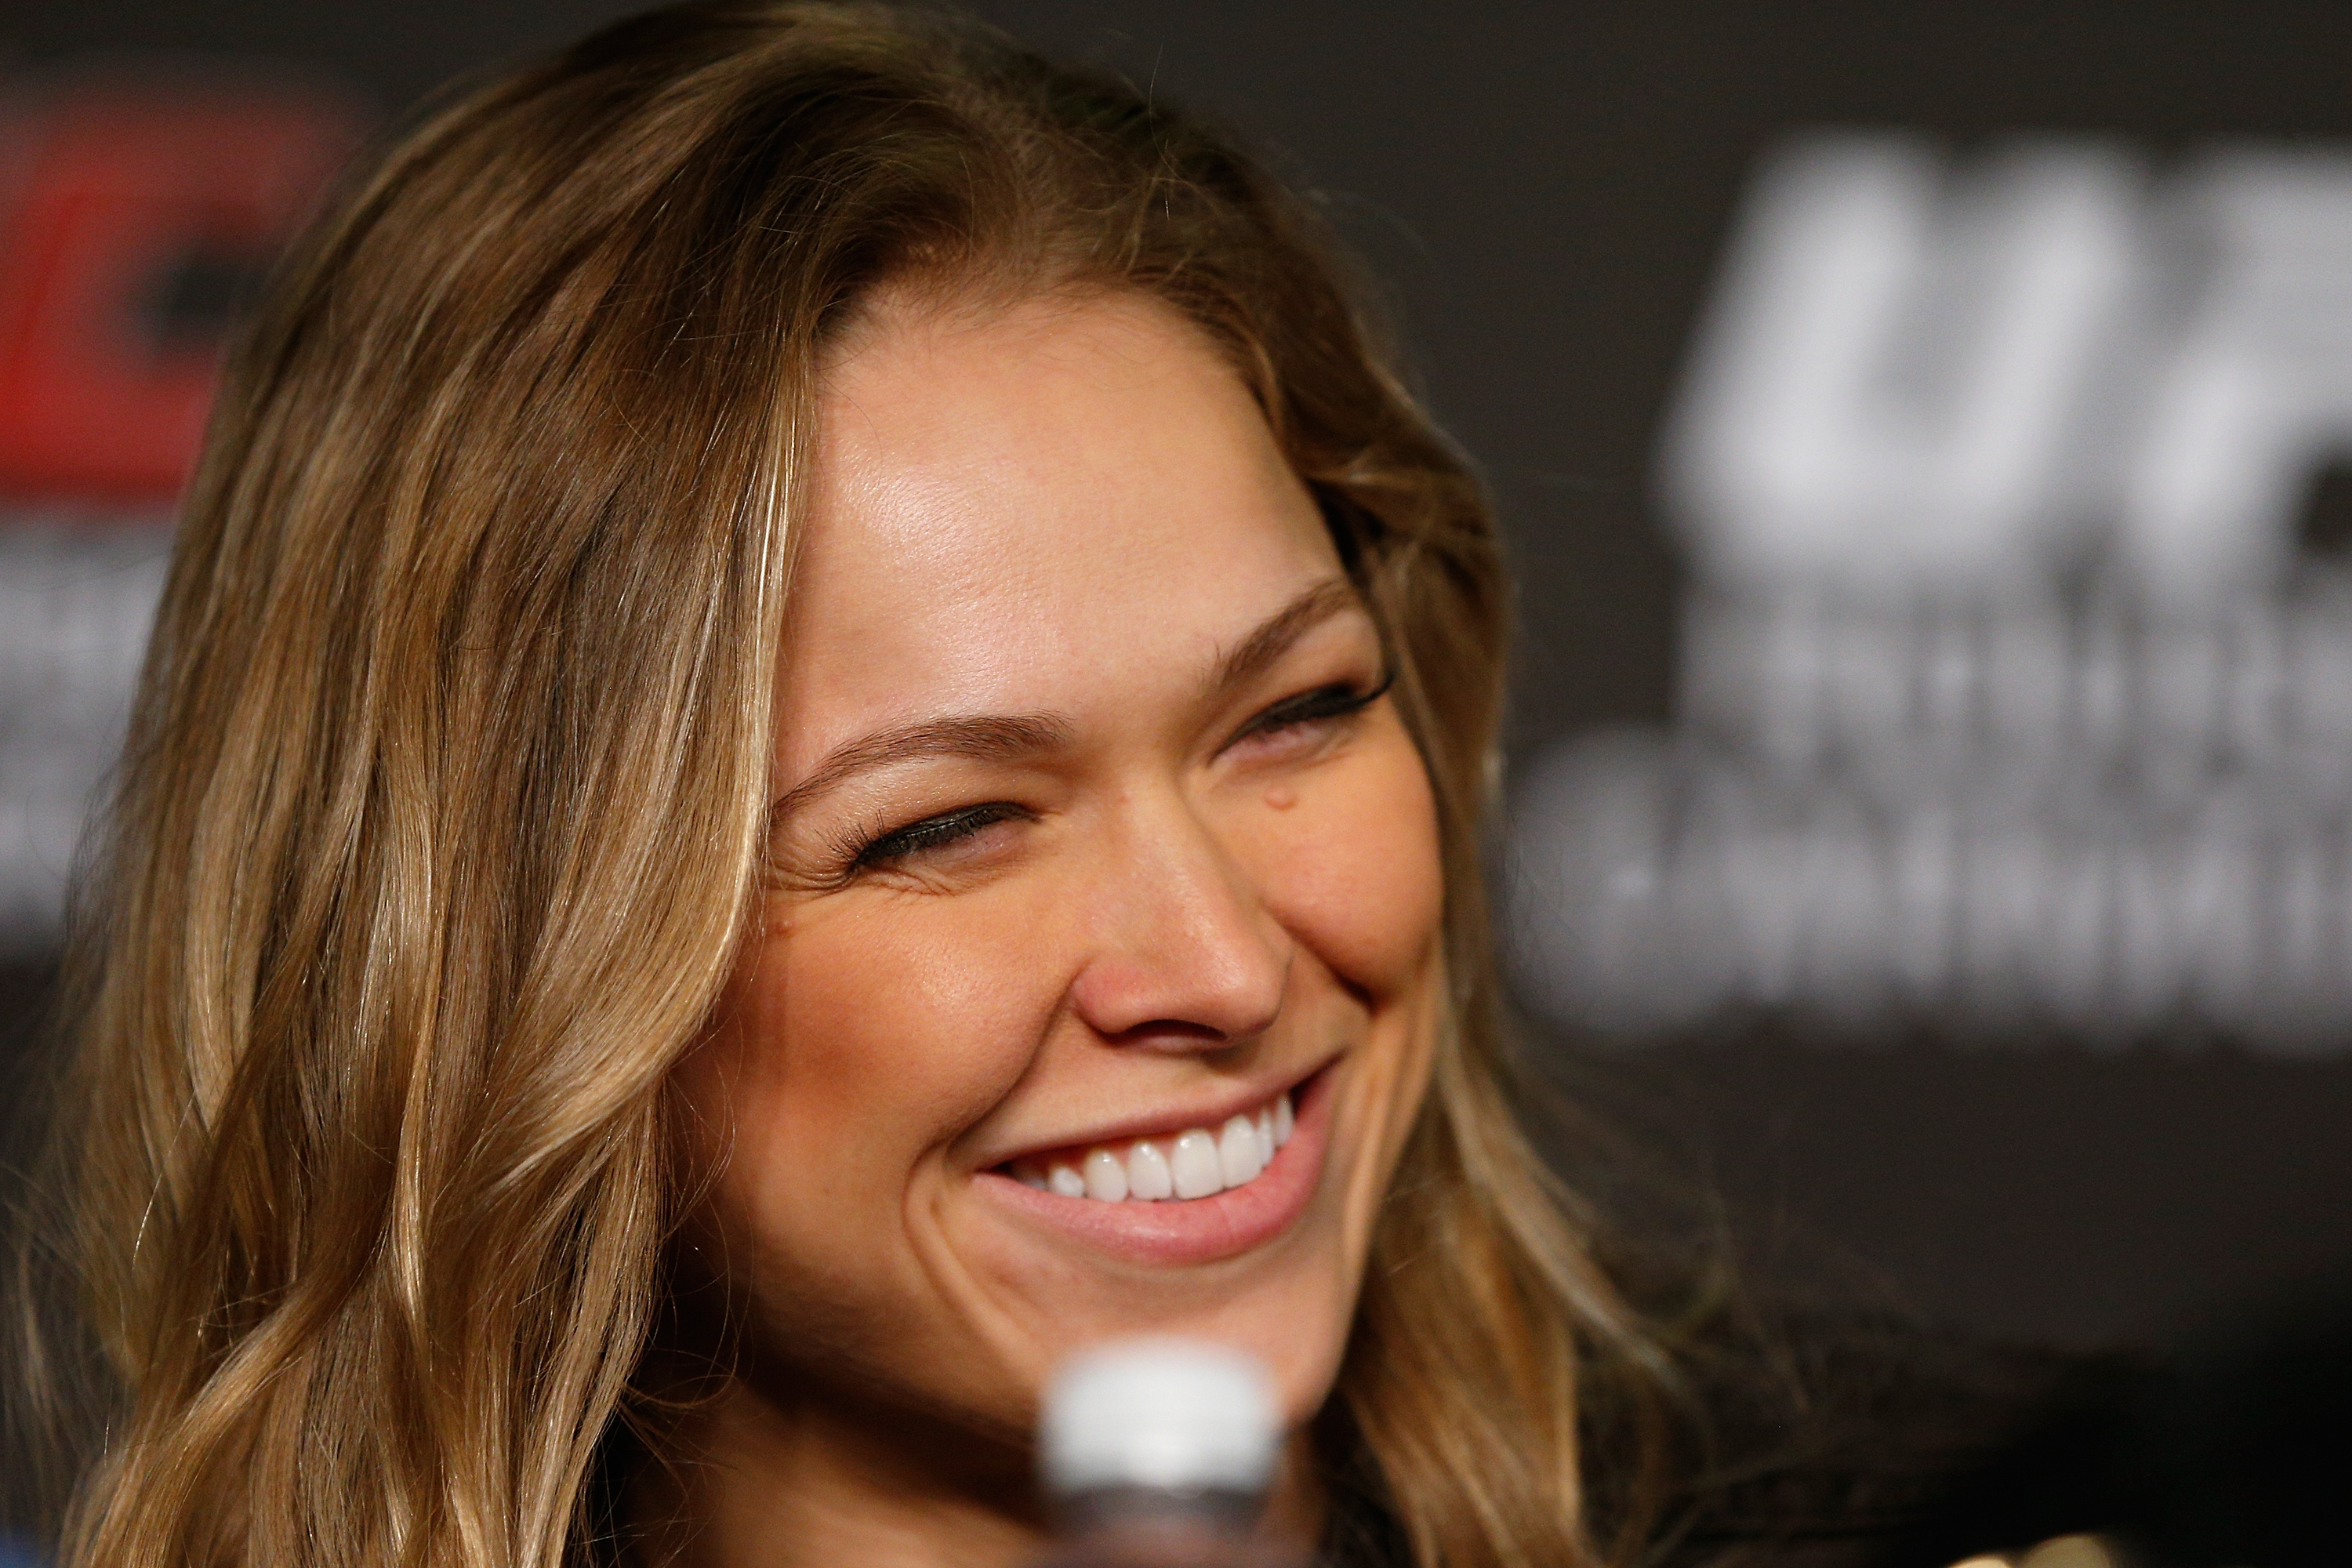 Ronda Rousey smiles during a press conference. (Getty)